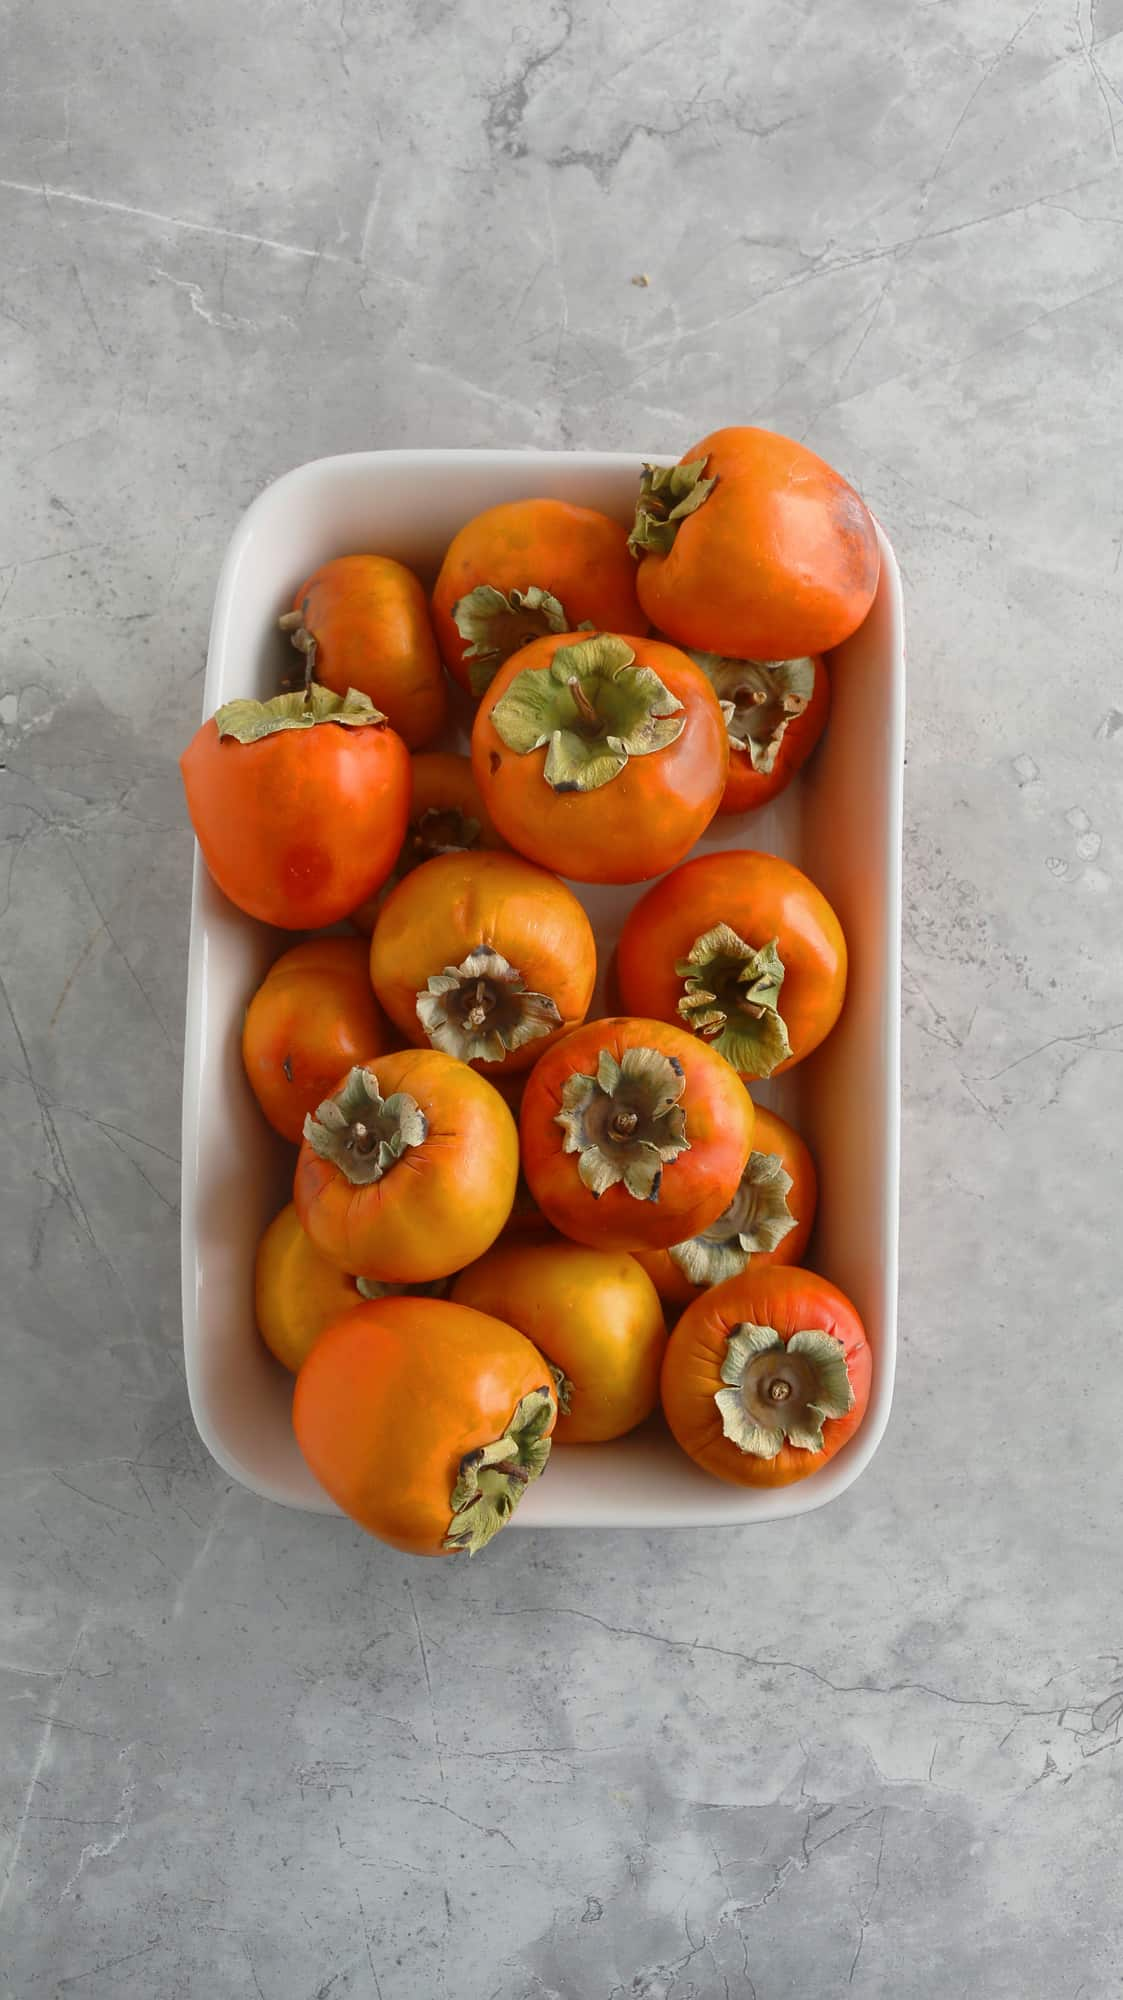 fuyu persimmons on a rectangle caserole dish